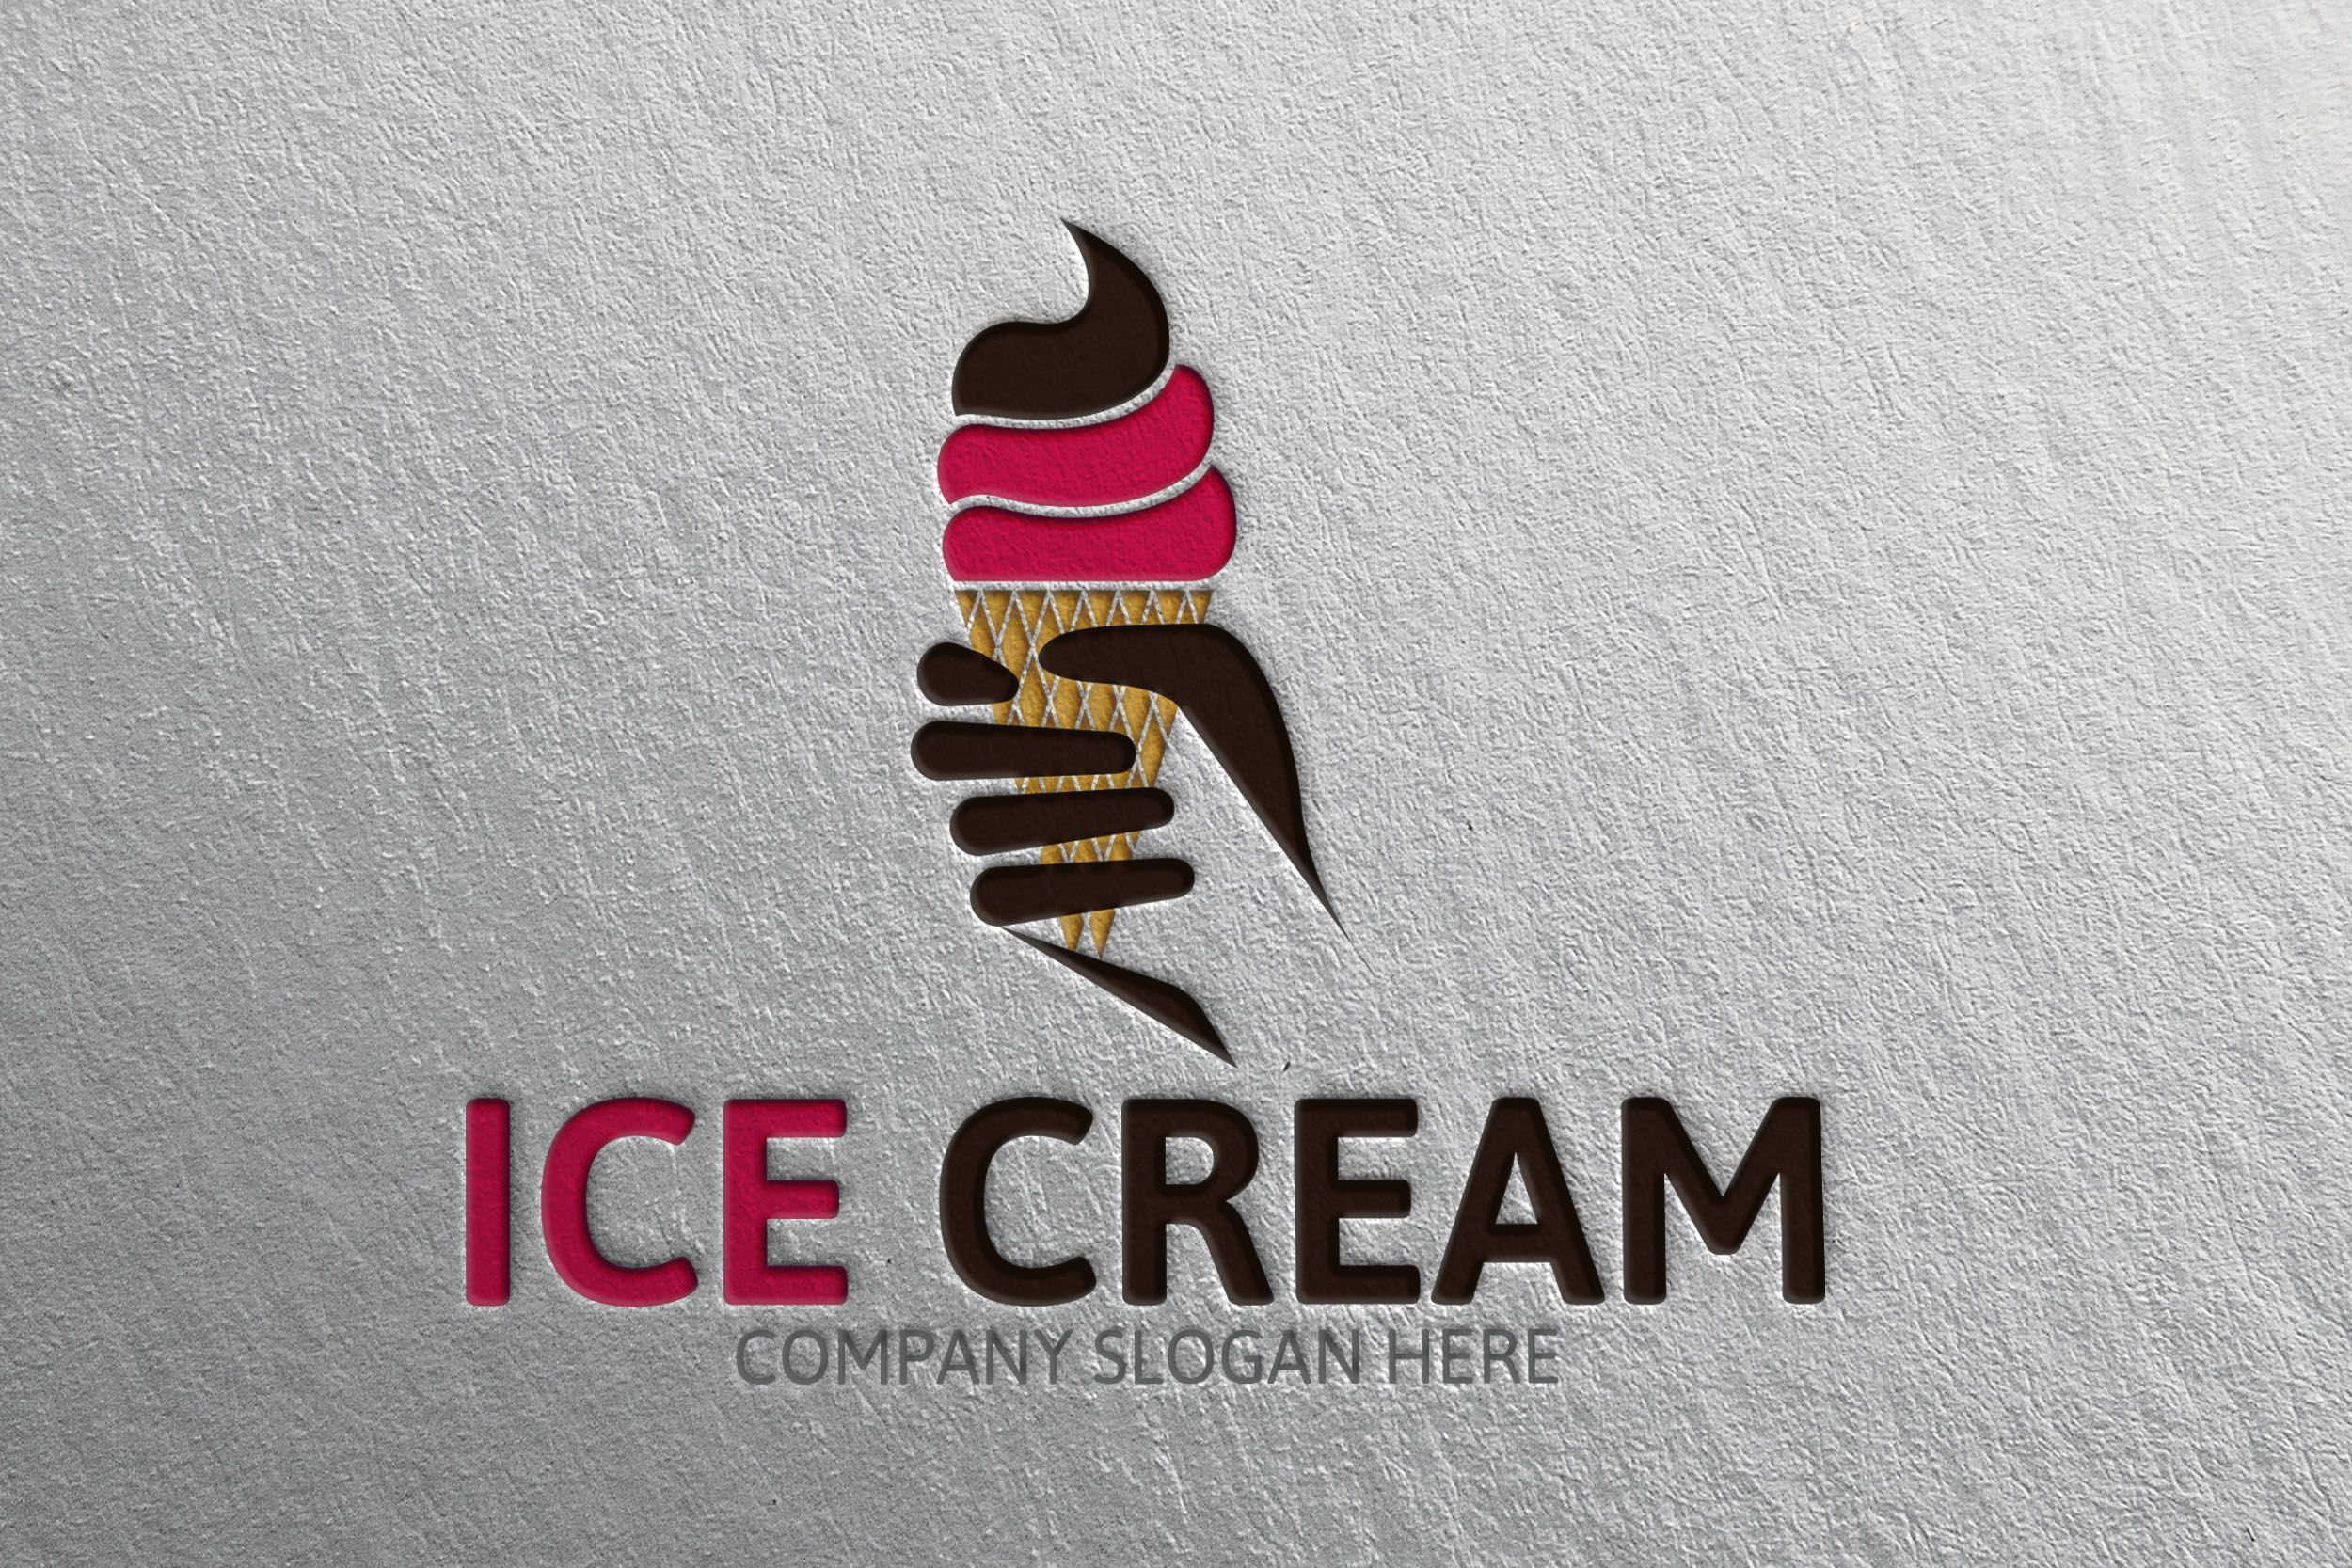 Ice Cream Logo Ice Cream Logo Ice Cream Packaging Ice Cream Business